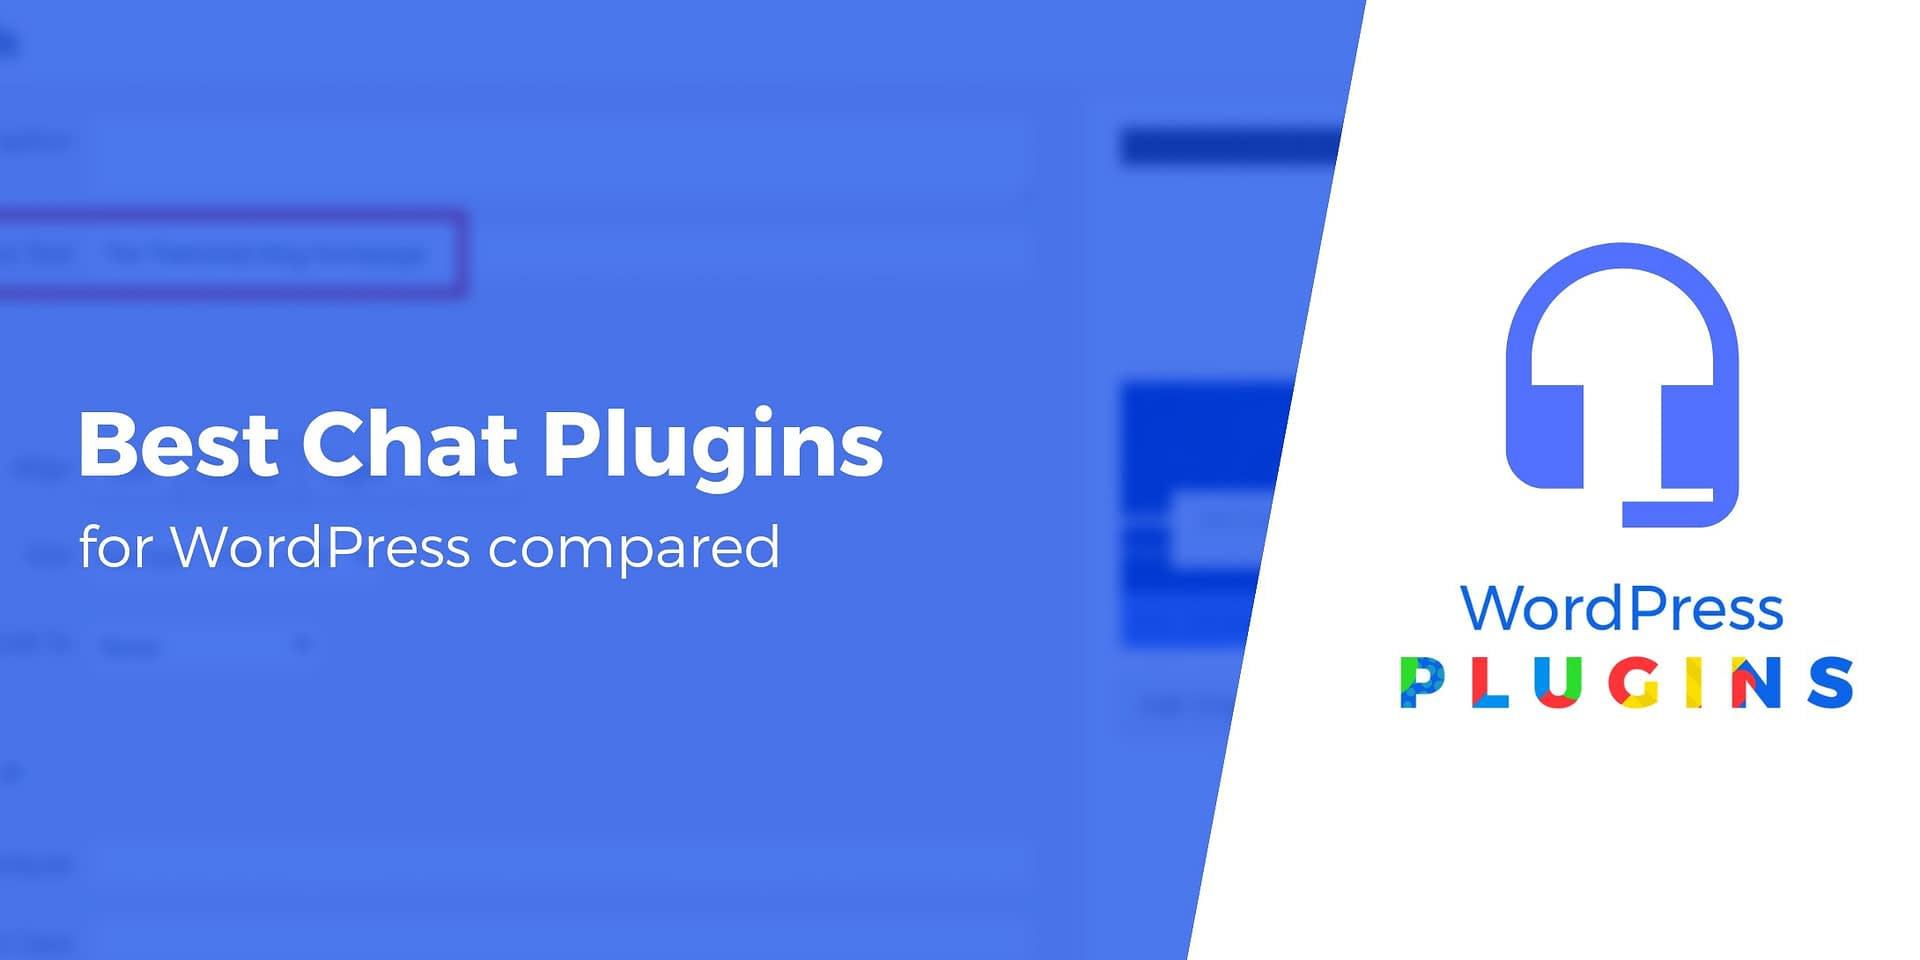 7 Best WordPress Chat Plugins Compared for 2019